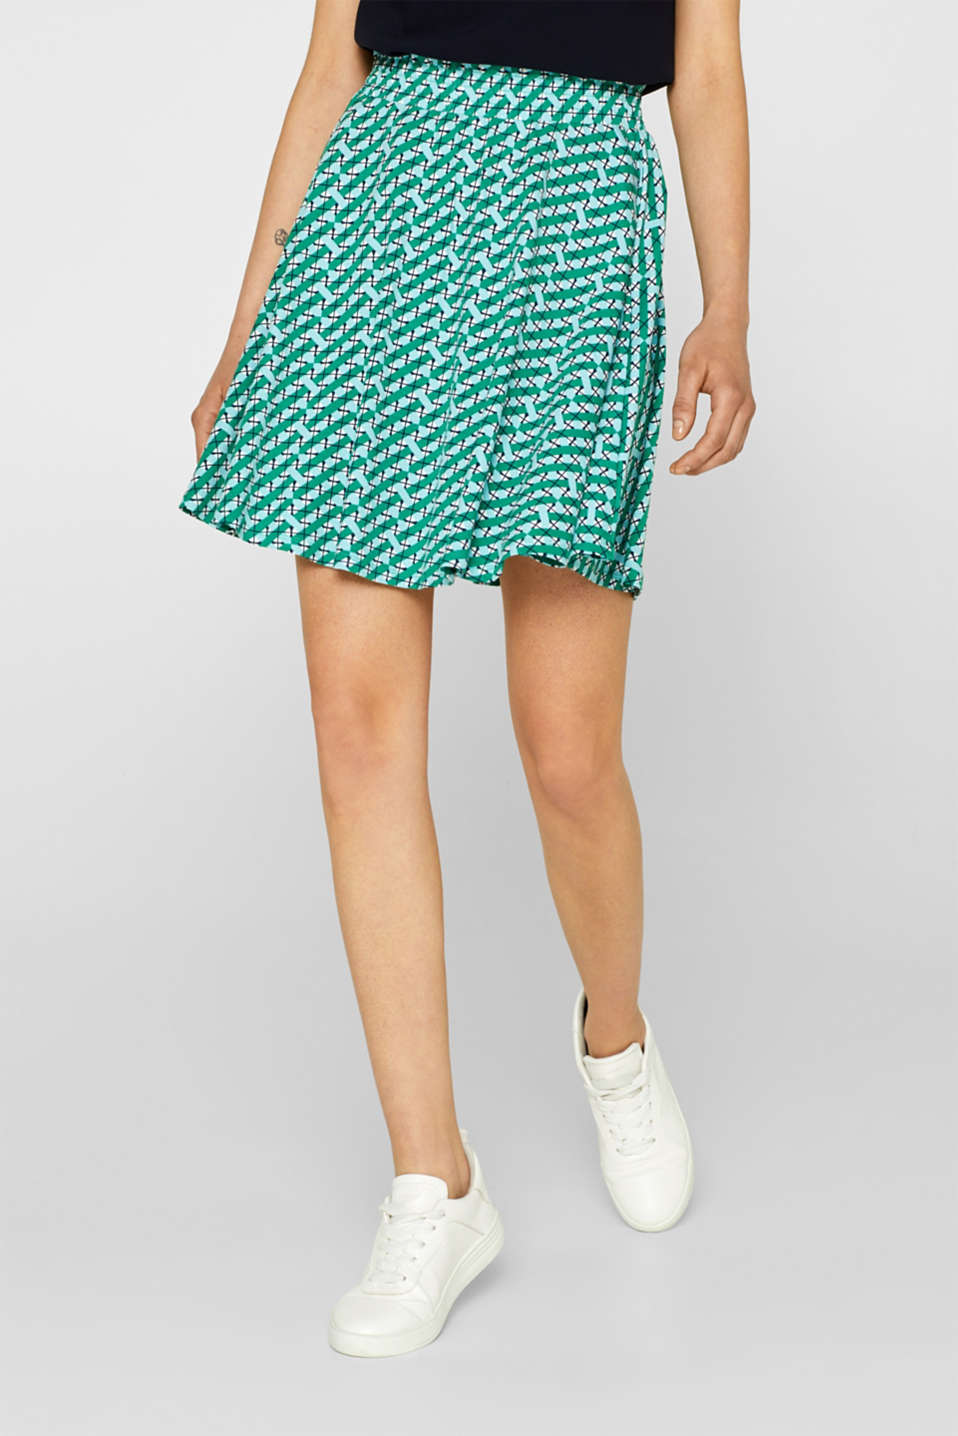 edc - Patterned jersey skirt with a smocked waistband